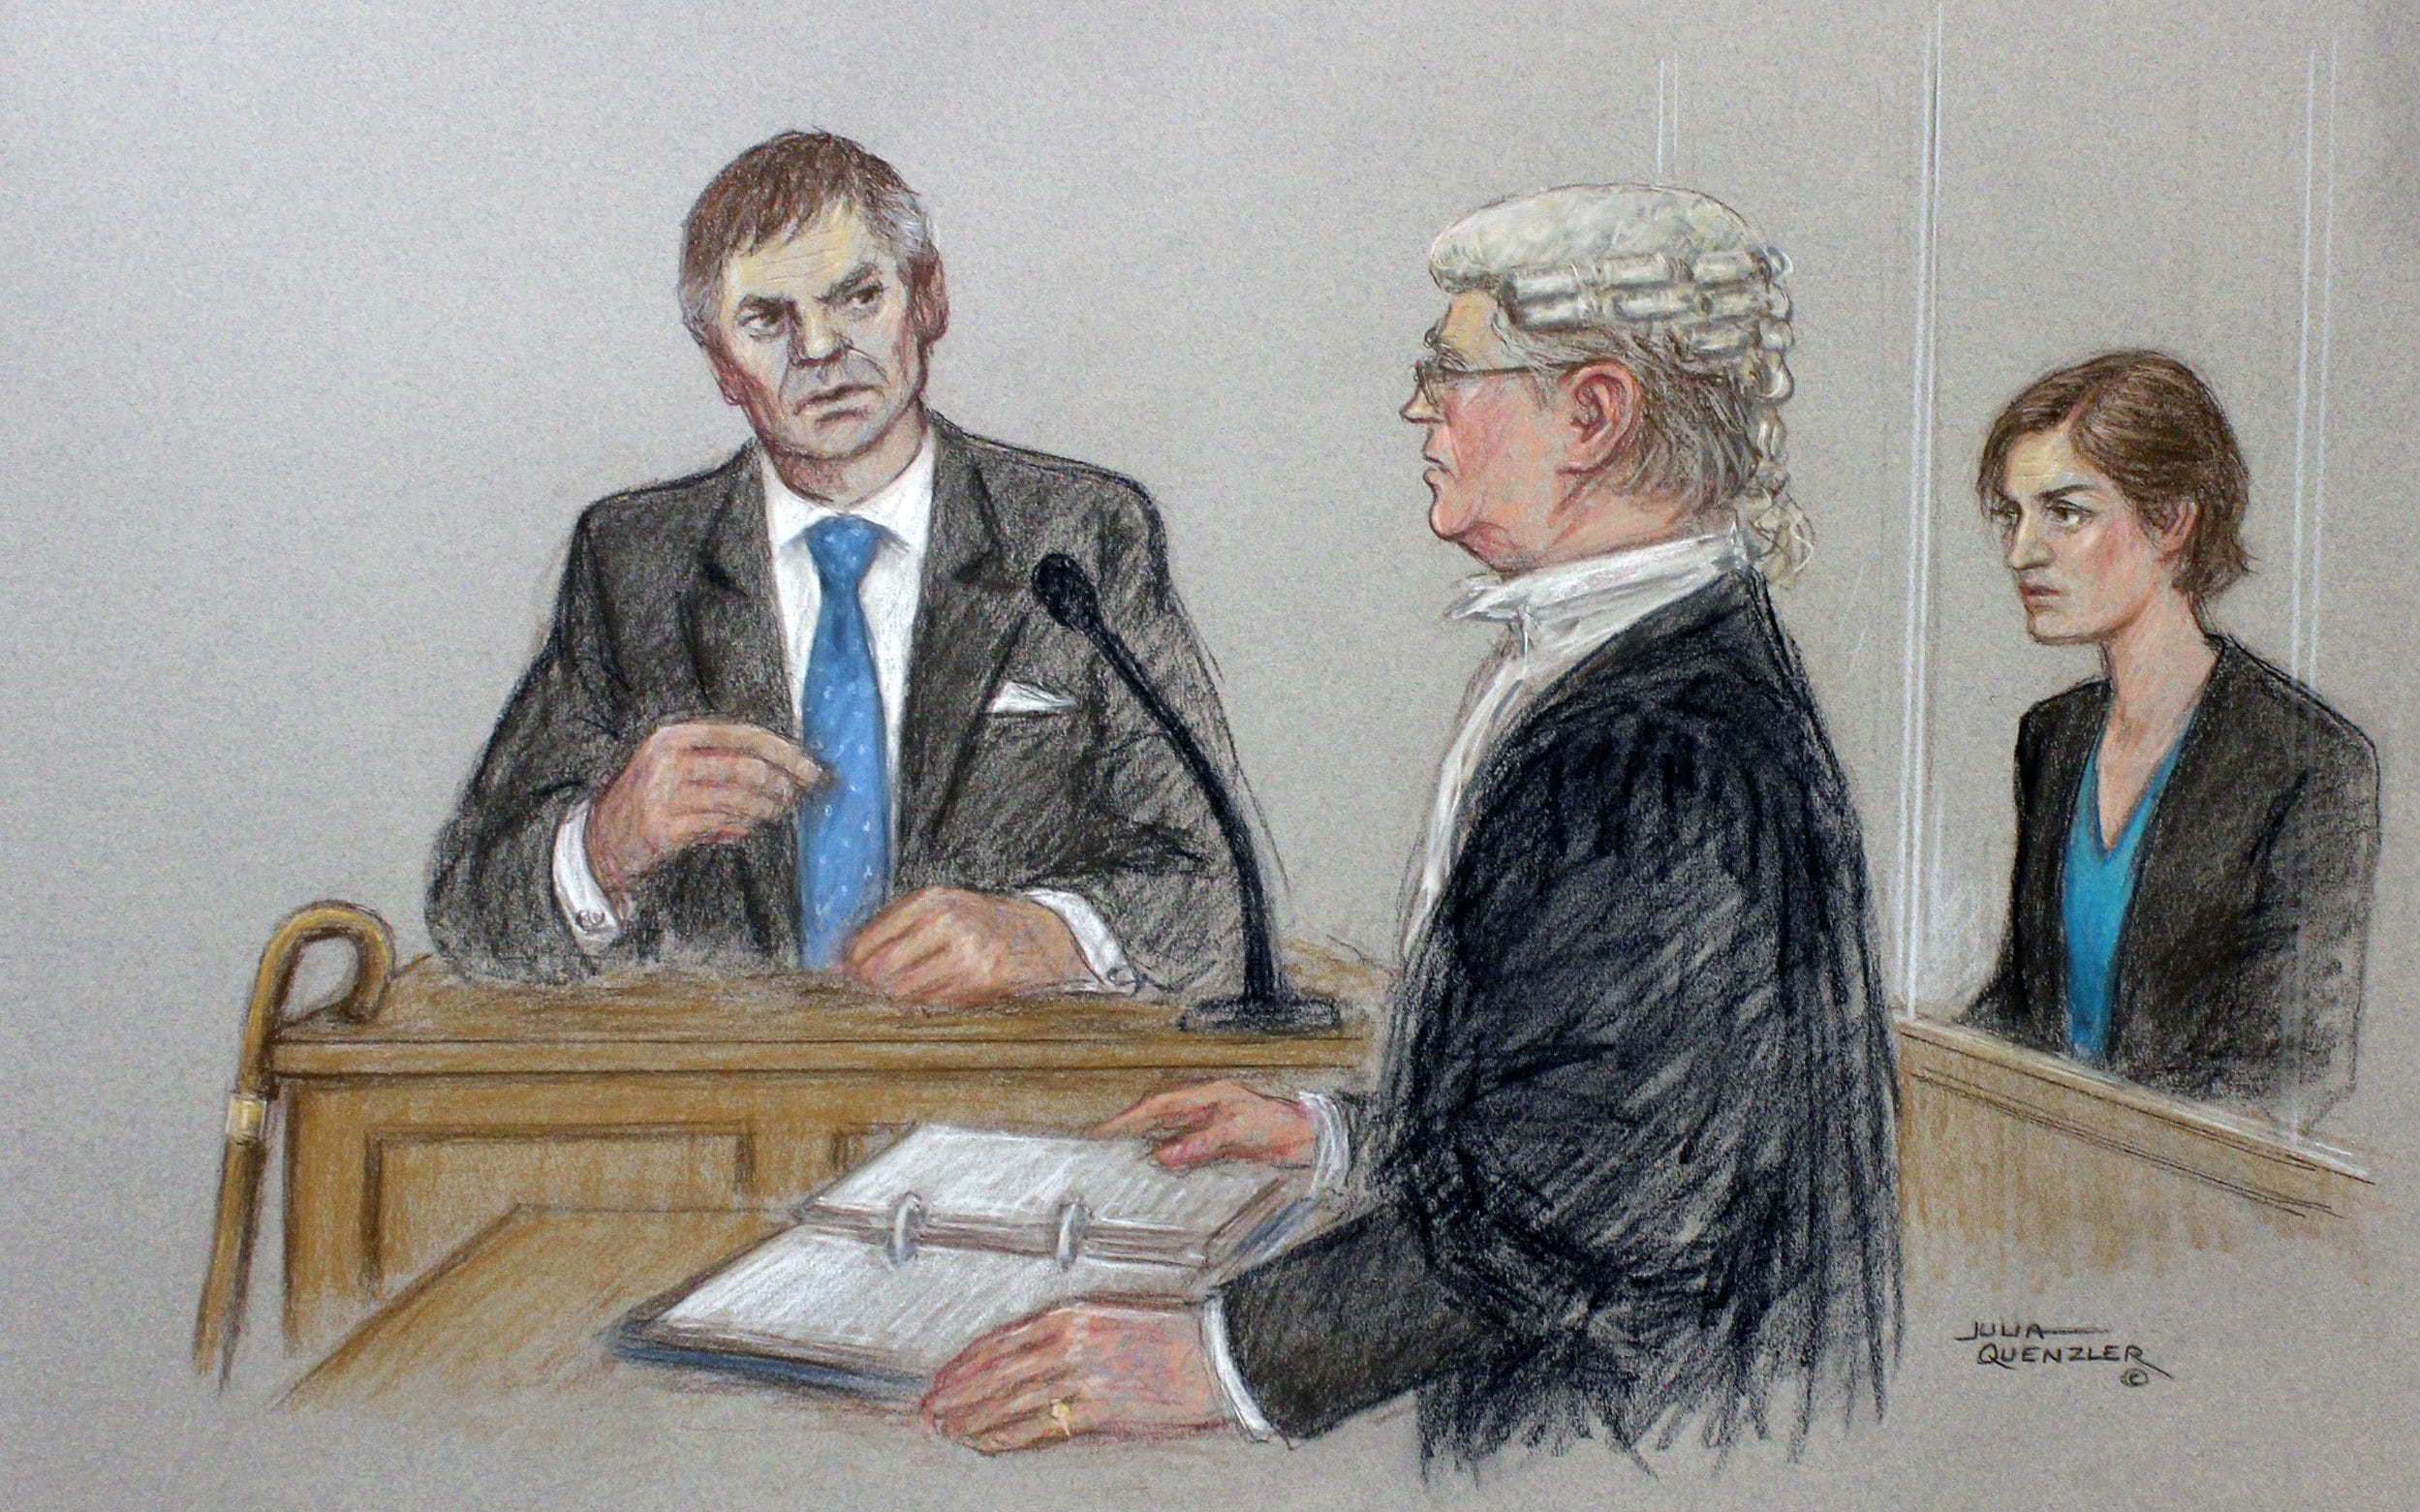 2498x1561 Archers Bully Rob Pictured For First Time As Court Artist Sketches